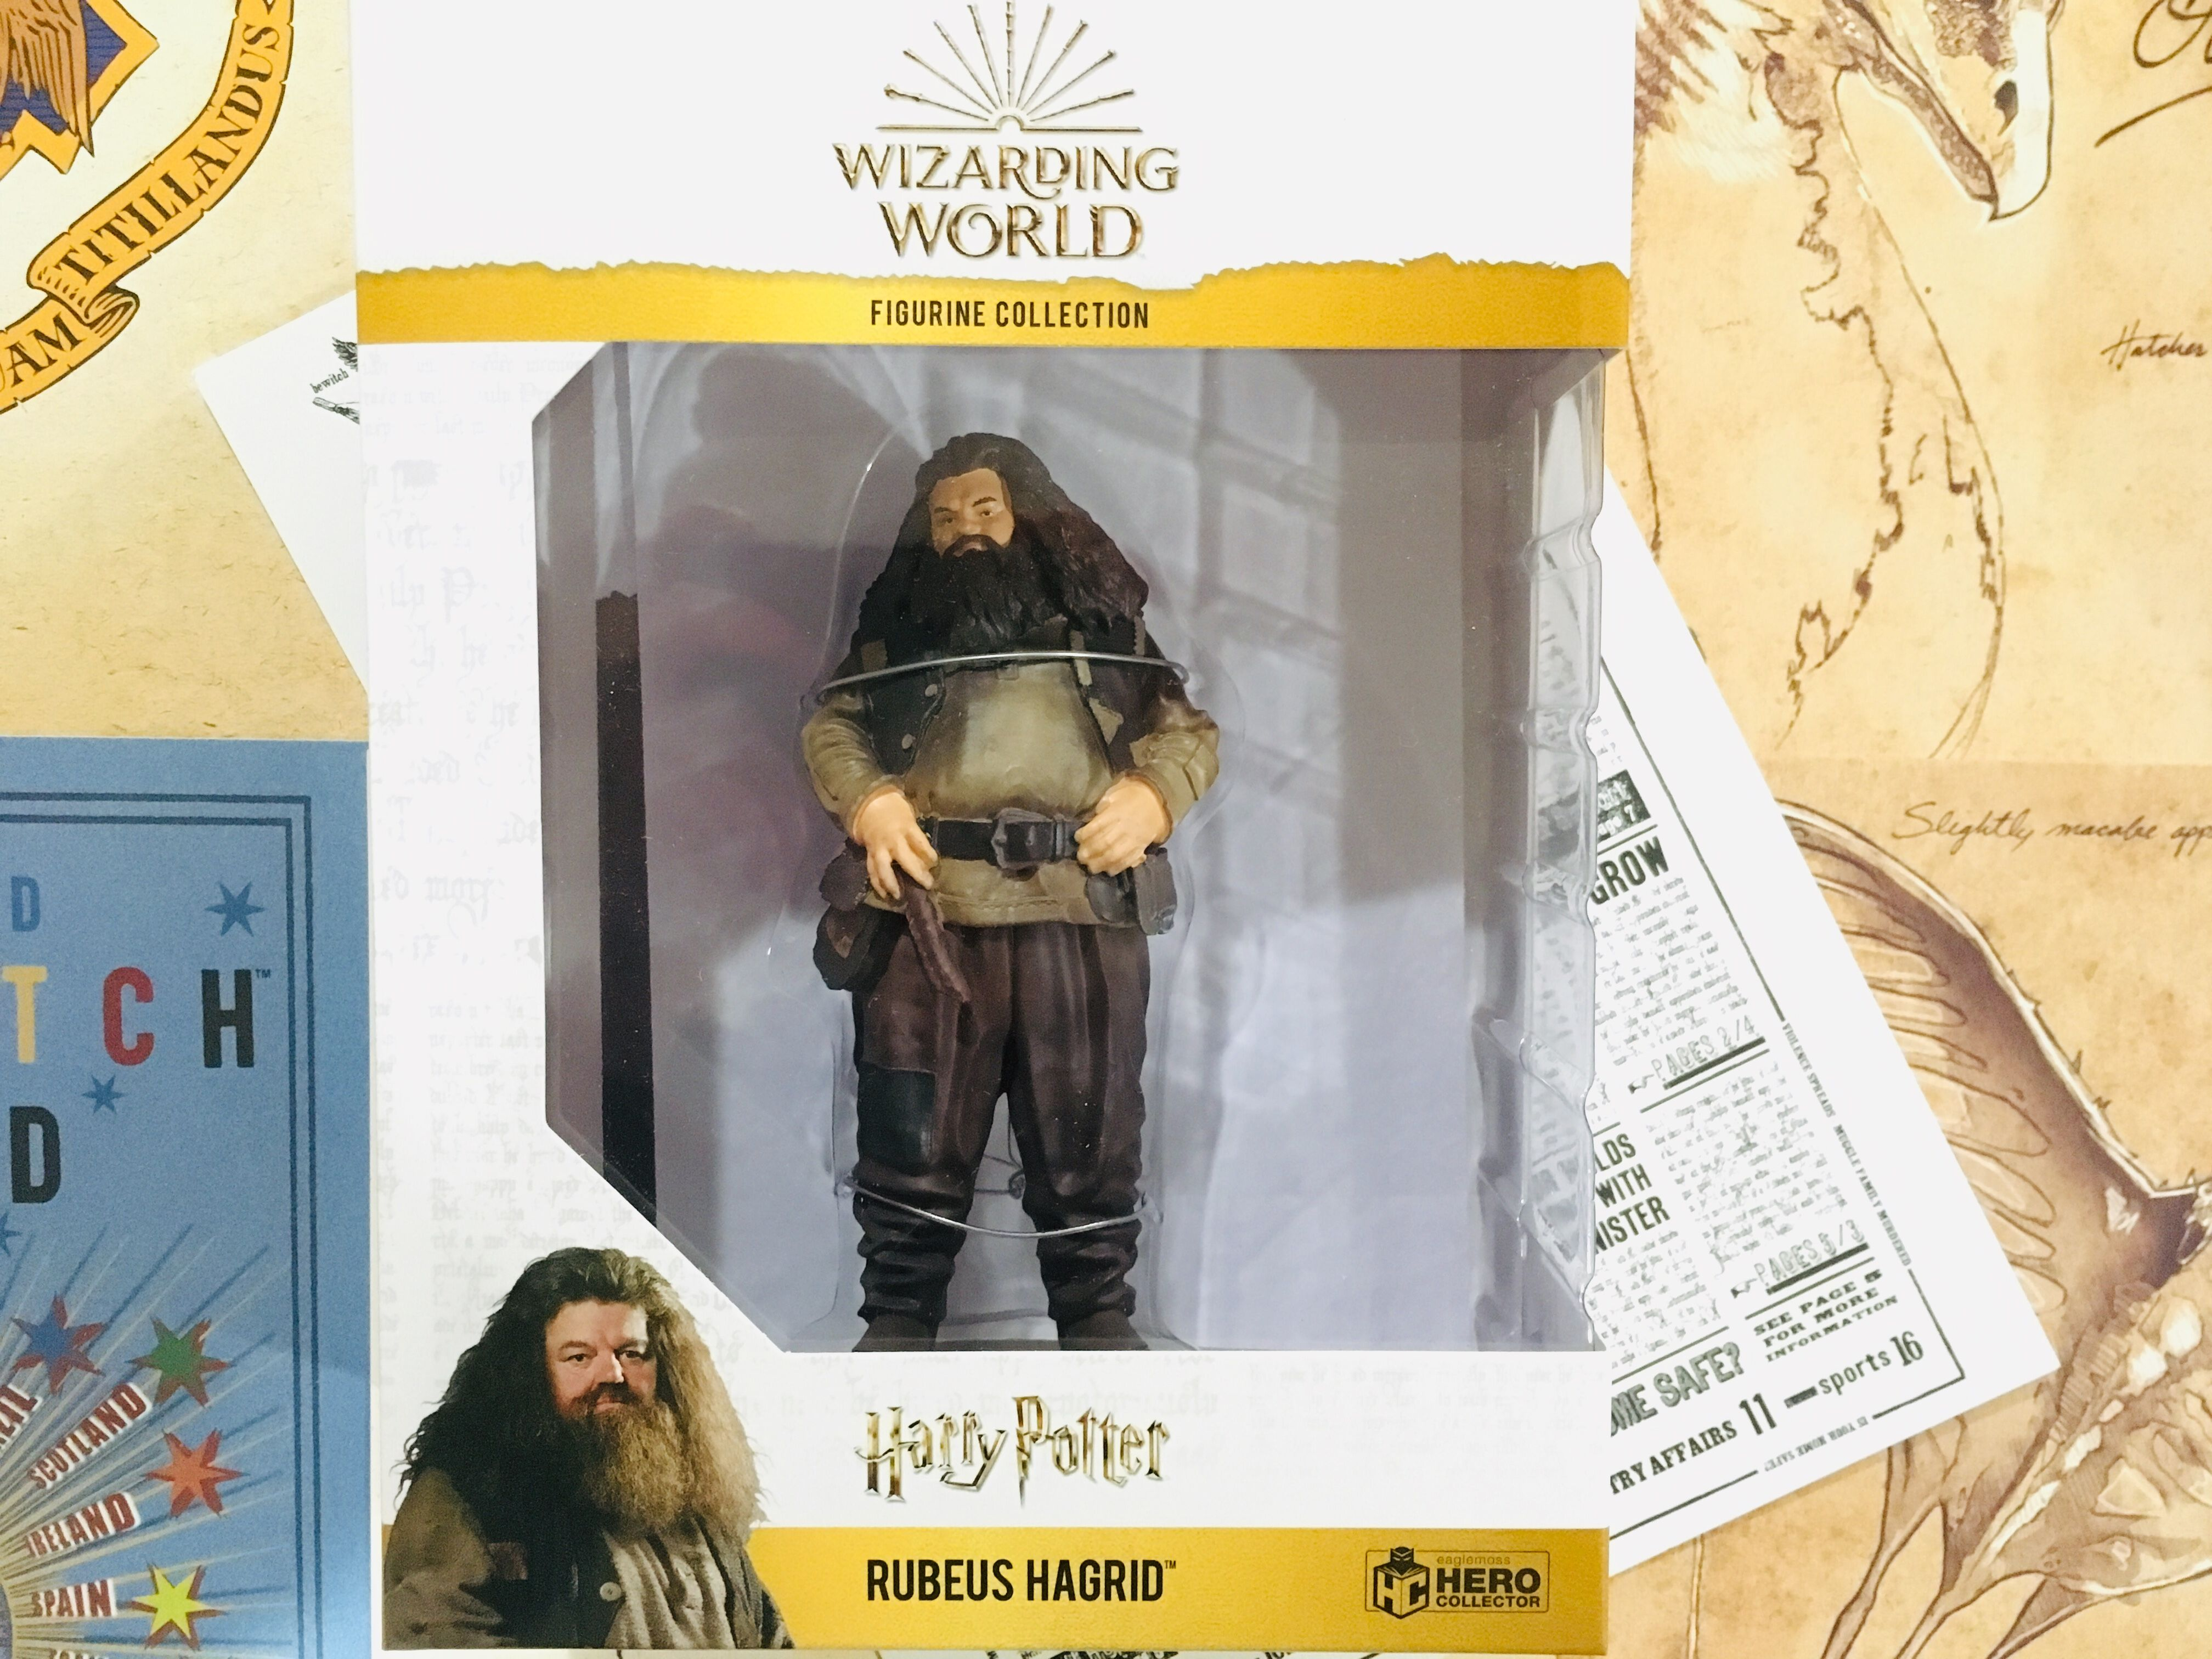 Rubeus Hagrid is carefully packaged in a collectible box to ensure safety during delivery as well as for maximum display capabilities.